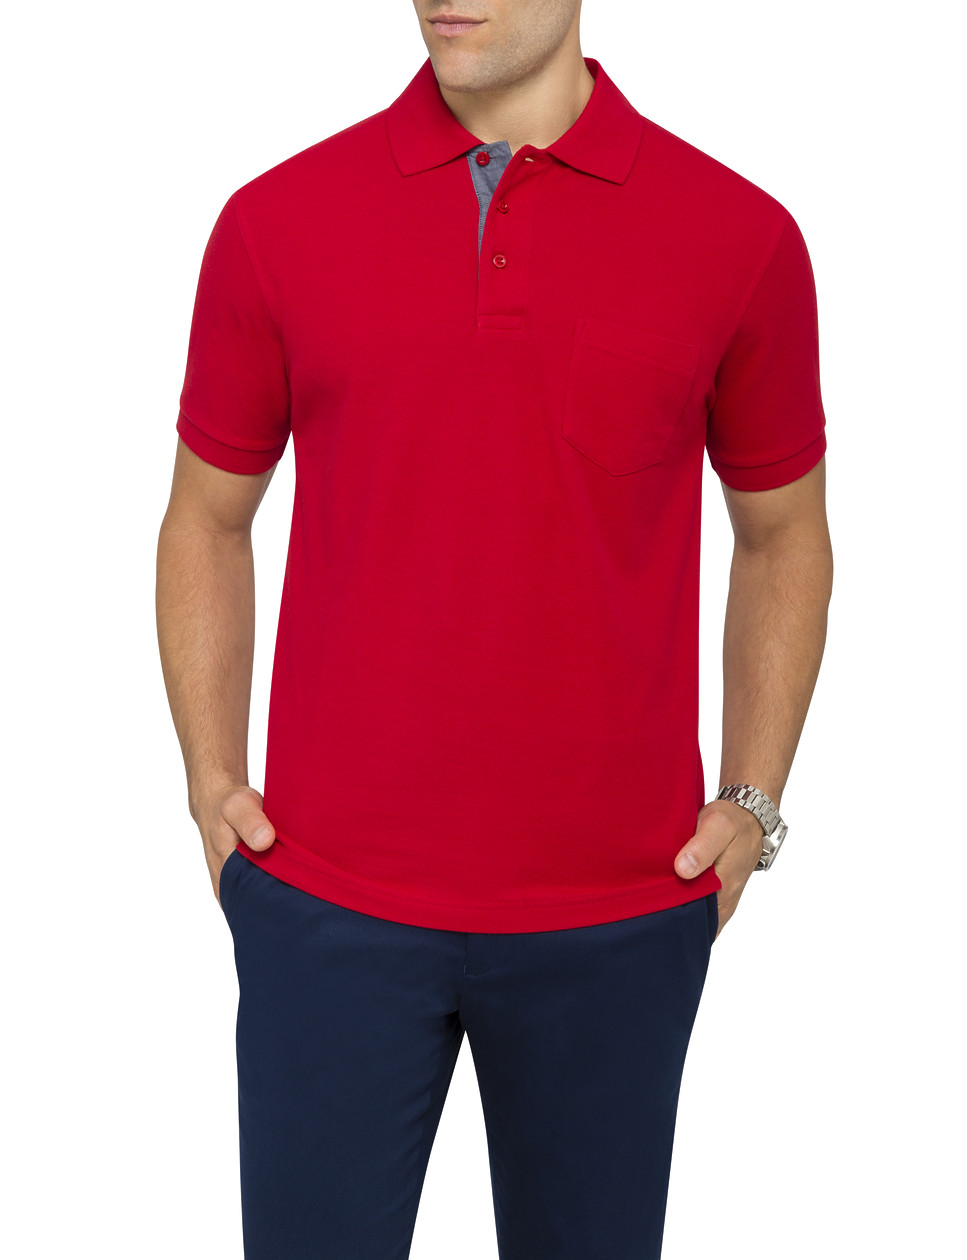 Shop for and buy van heusen womens clothing online at Macy's. Find van heusen womens clothing at Macy's. Macy's Presents: The Edit- A curated mix of fashion and inspiration Check It Out. van heusen clothing. Narrow by Shirt Fit. Slim Fit. Regular Classic. Athletic Fitted. Filter;.